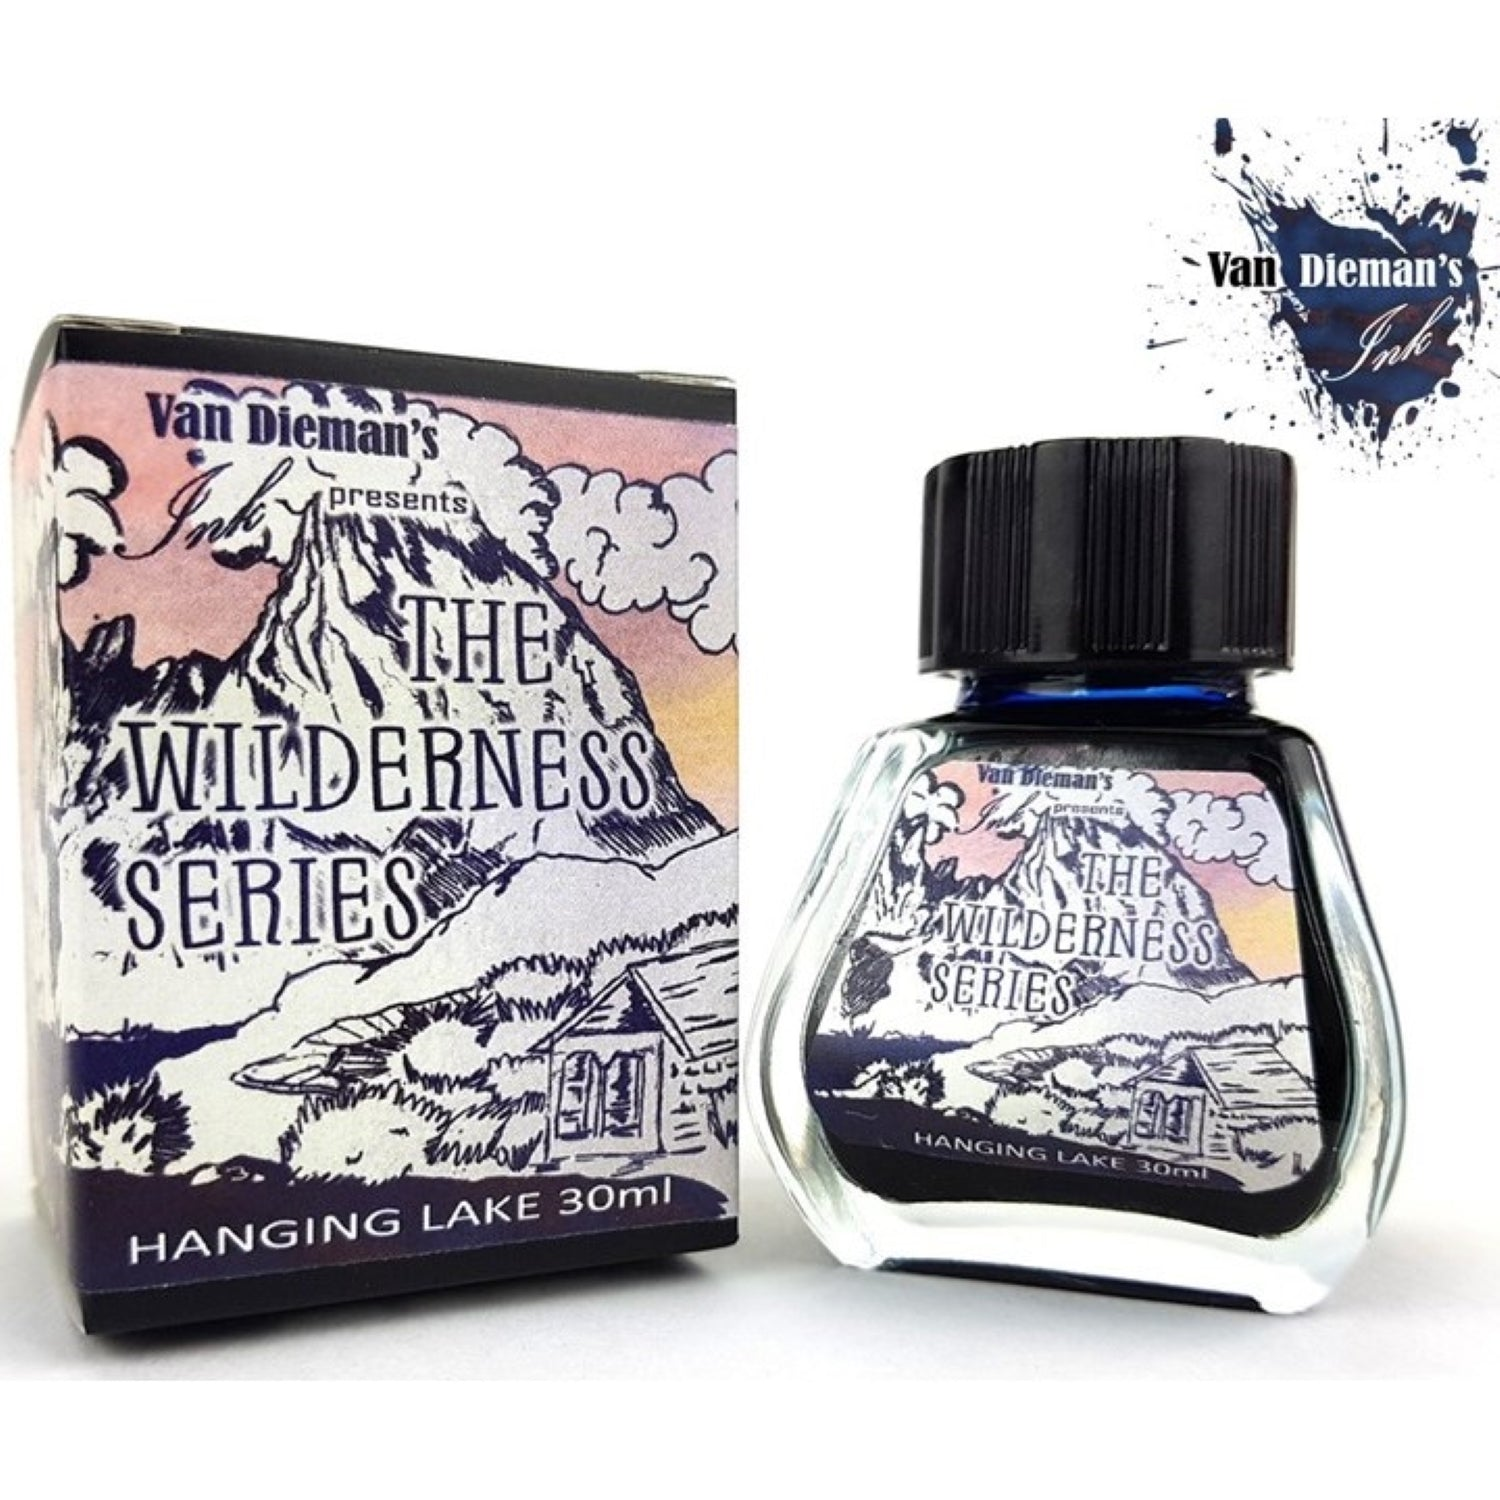 Van Diemans The Wilderness Series Hanging Lake Ink 30ml